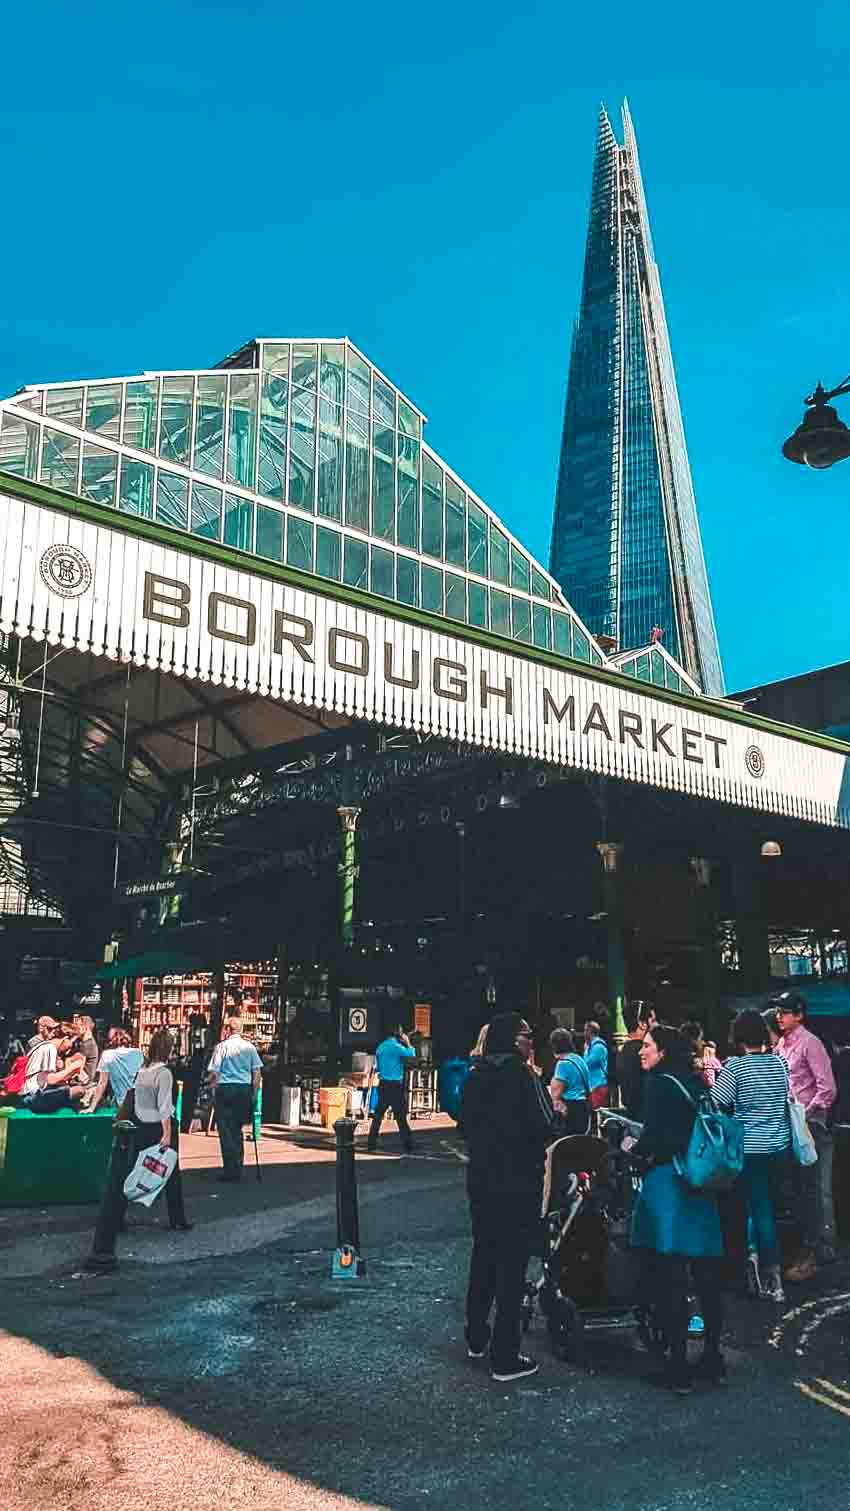 View of Borough Market with the Shard in the background.